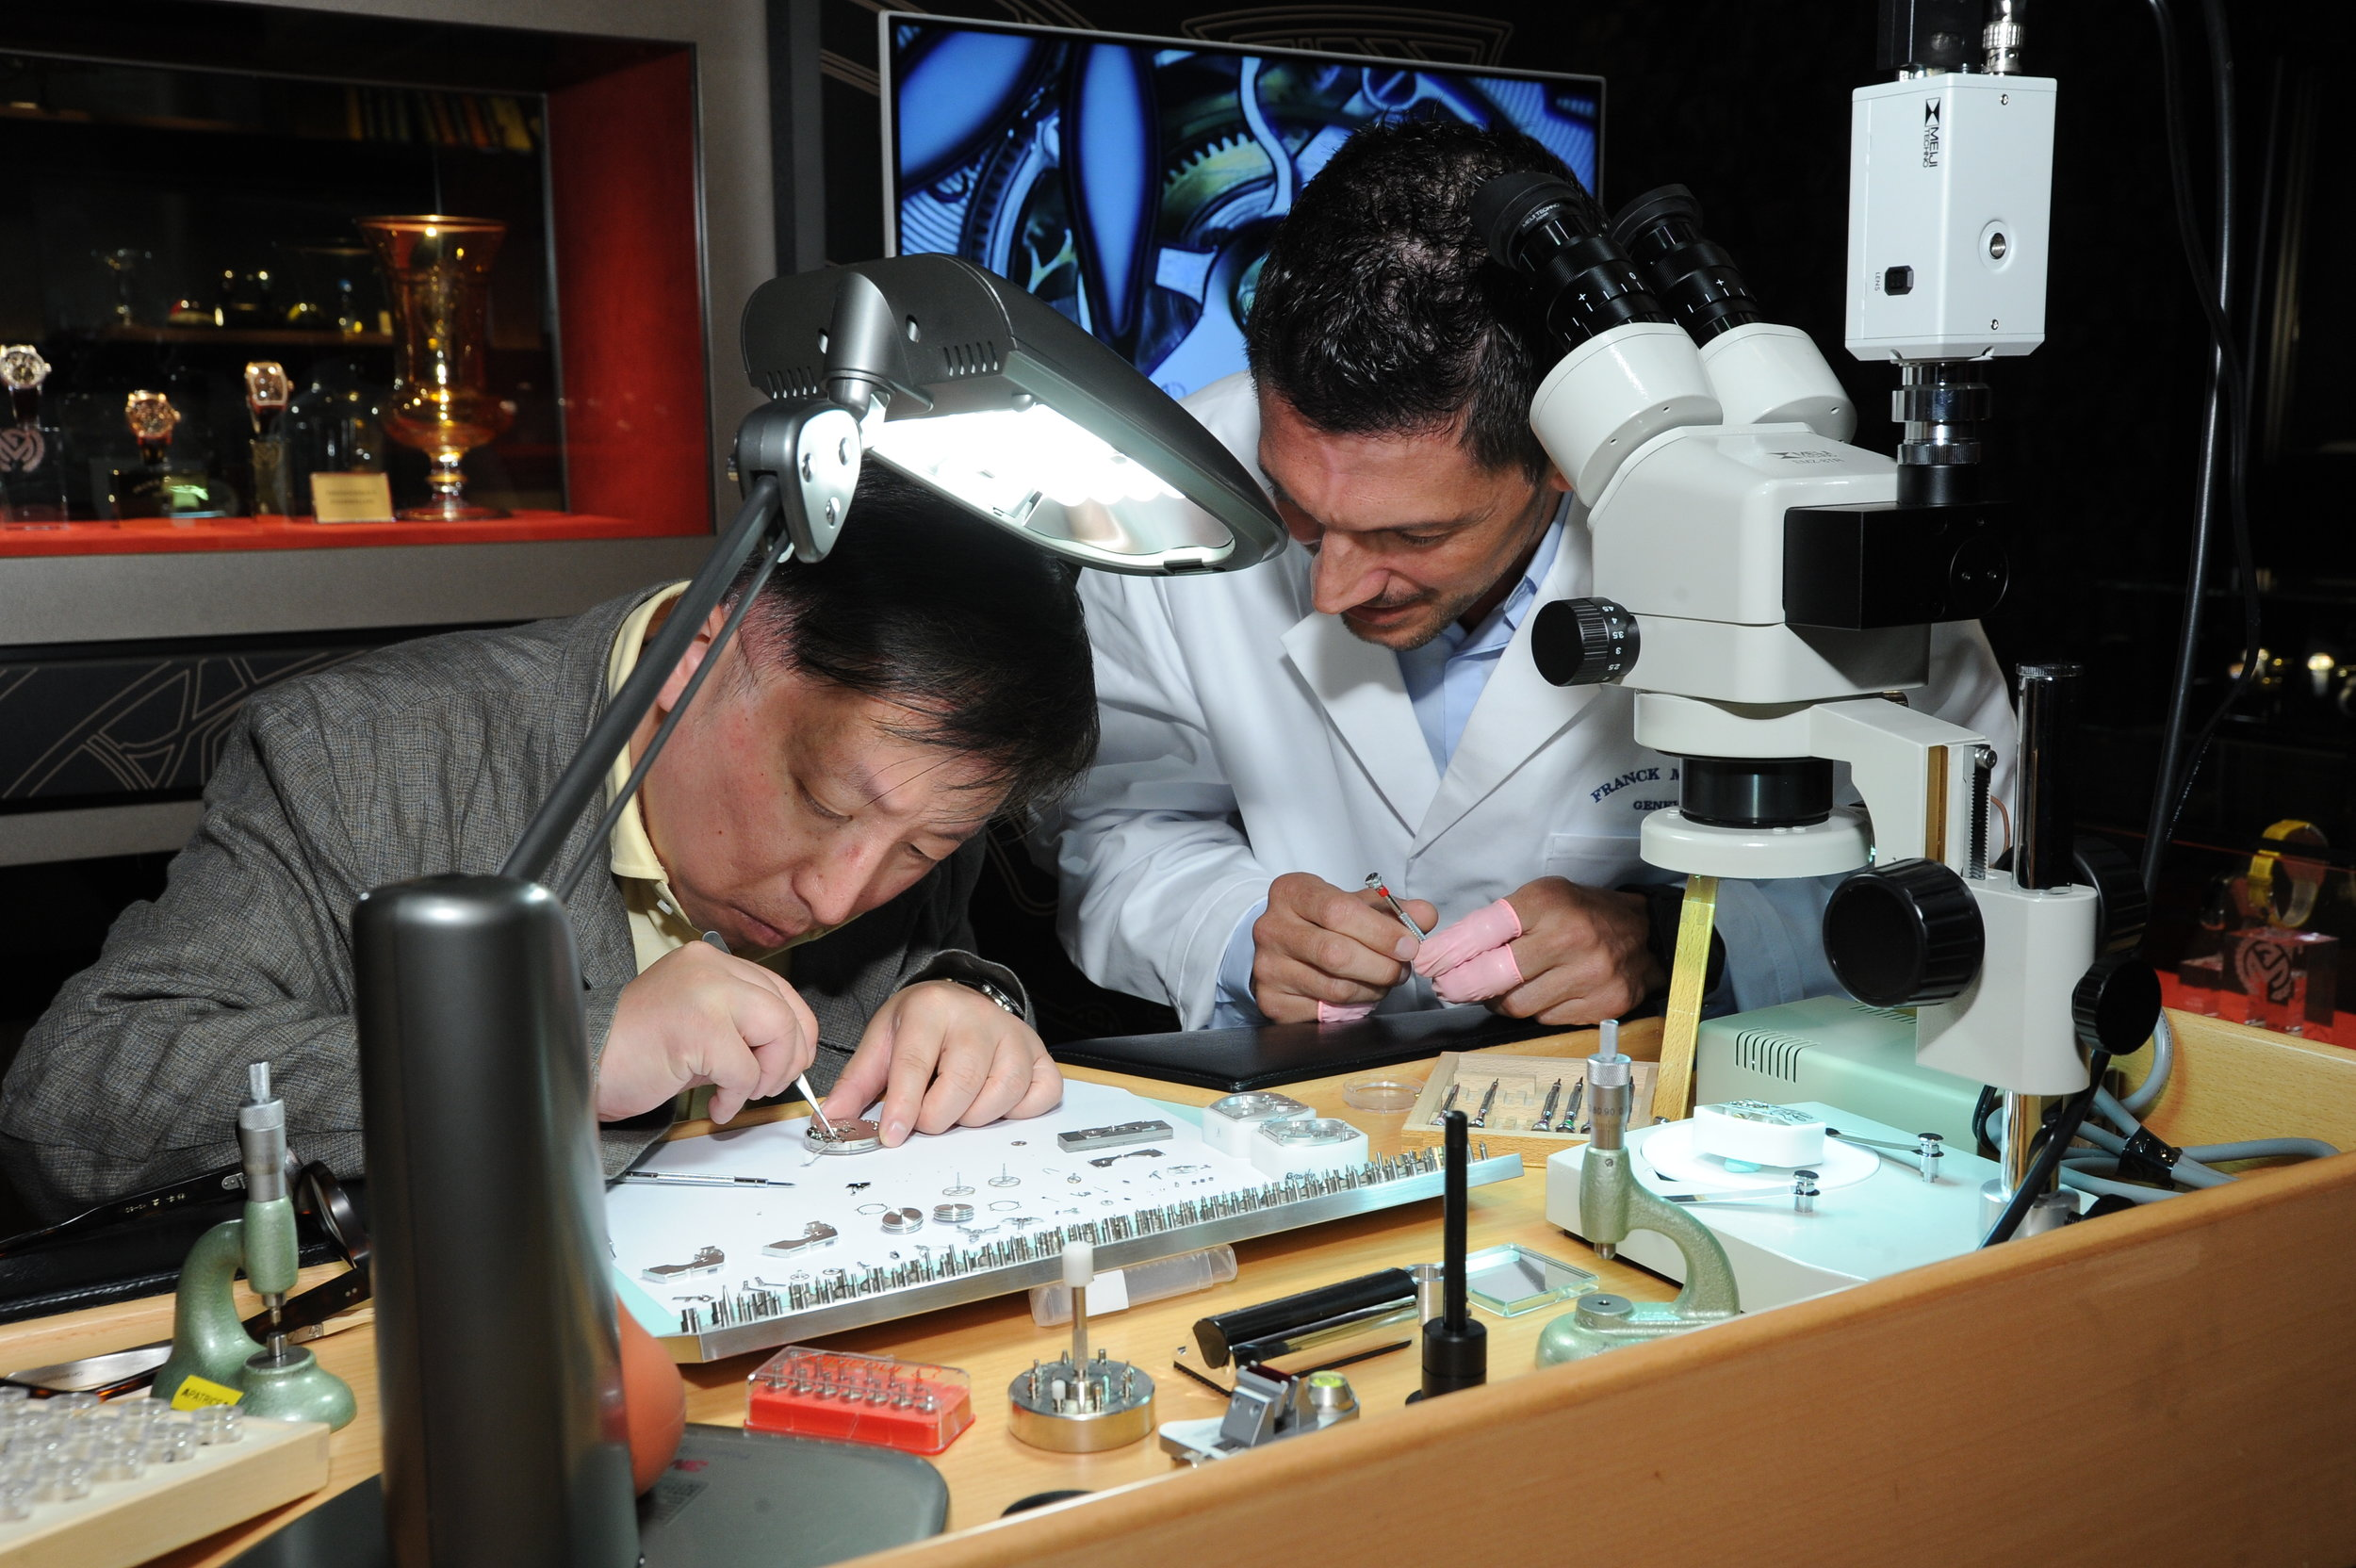 WPHH_Watchmaker with guests.JPG